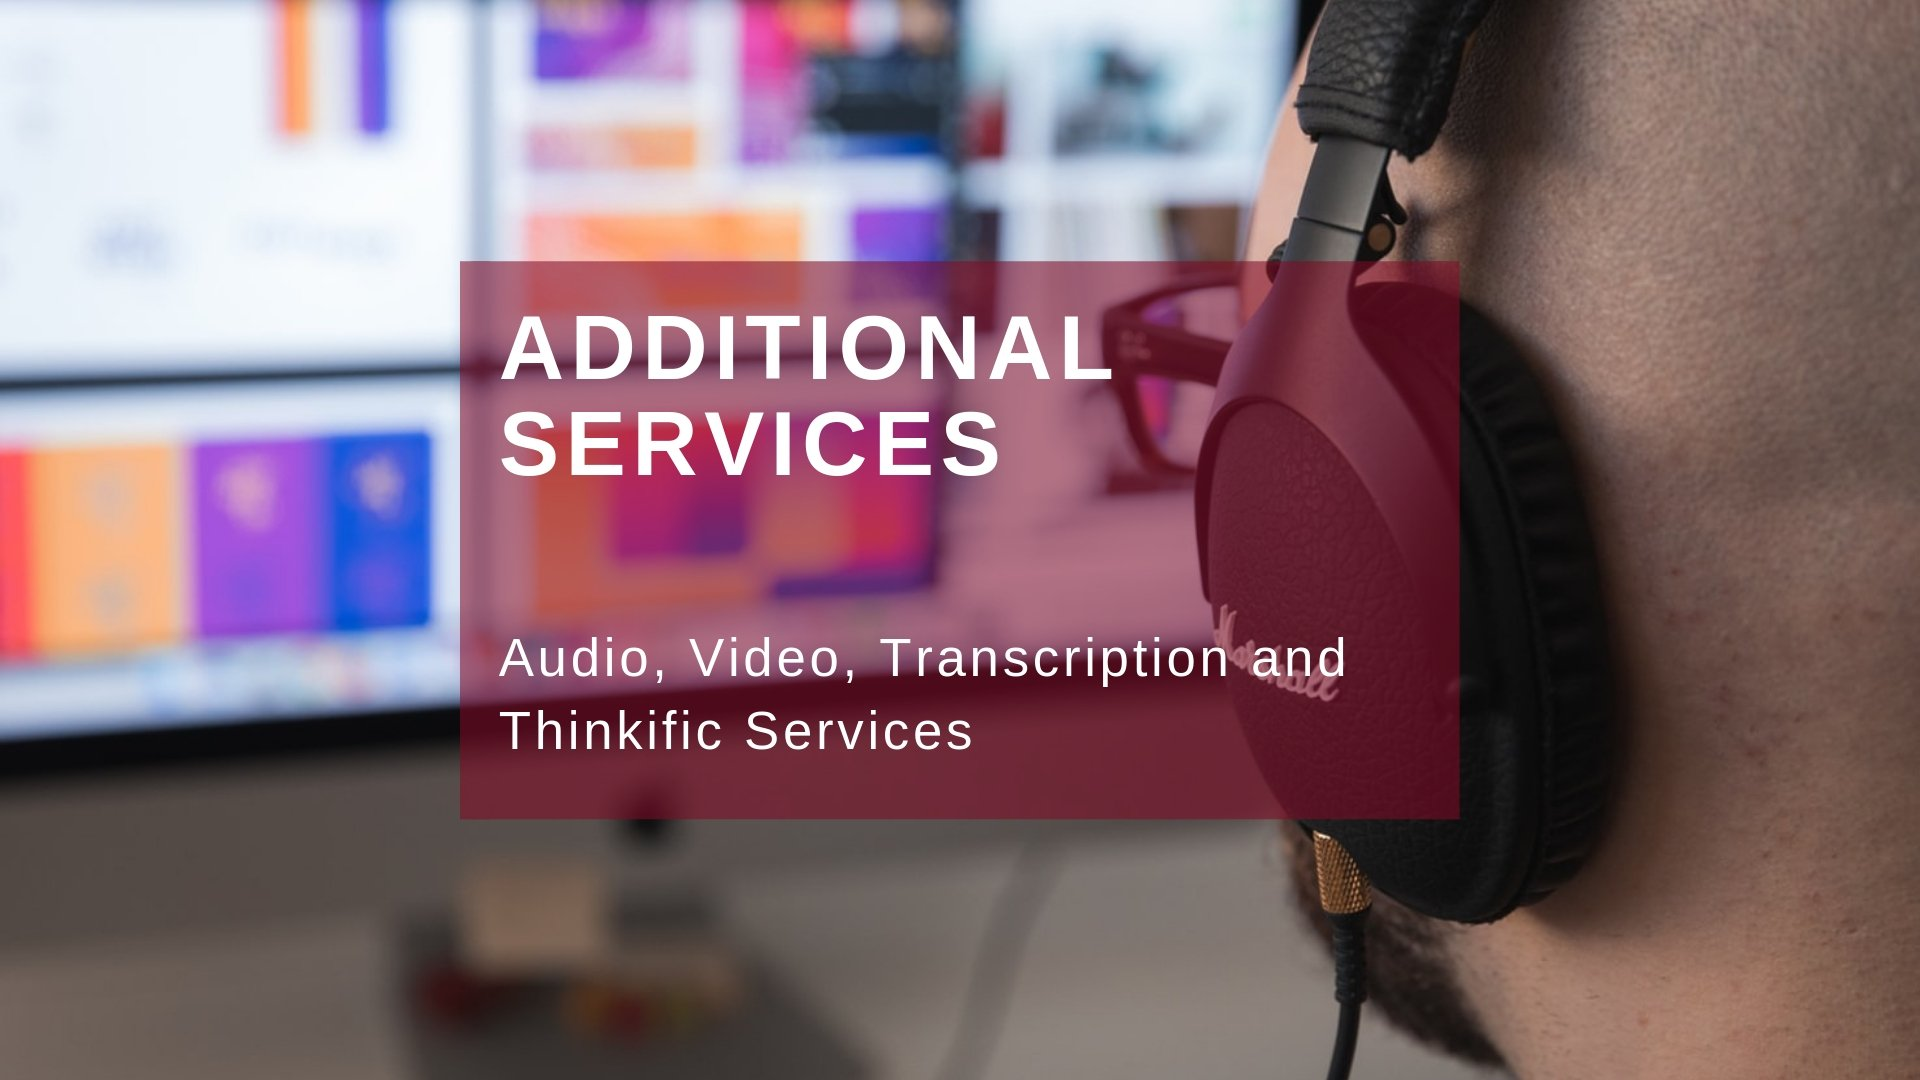 Audio Transcription services, You tube video services, and more